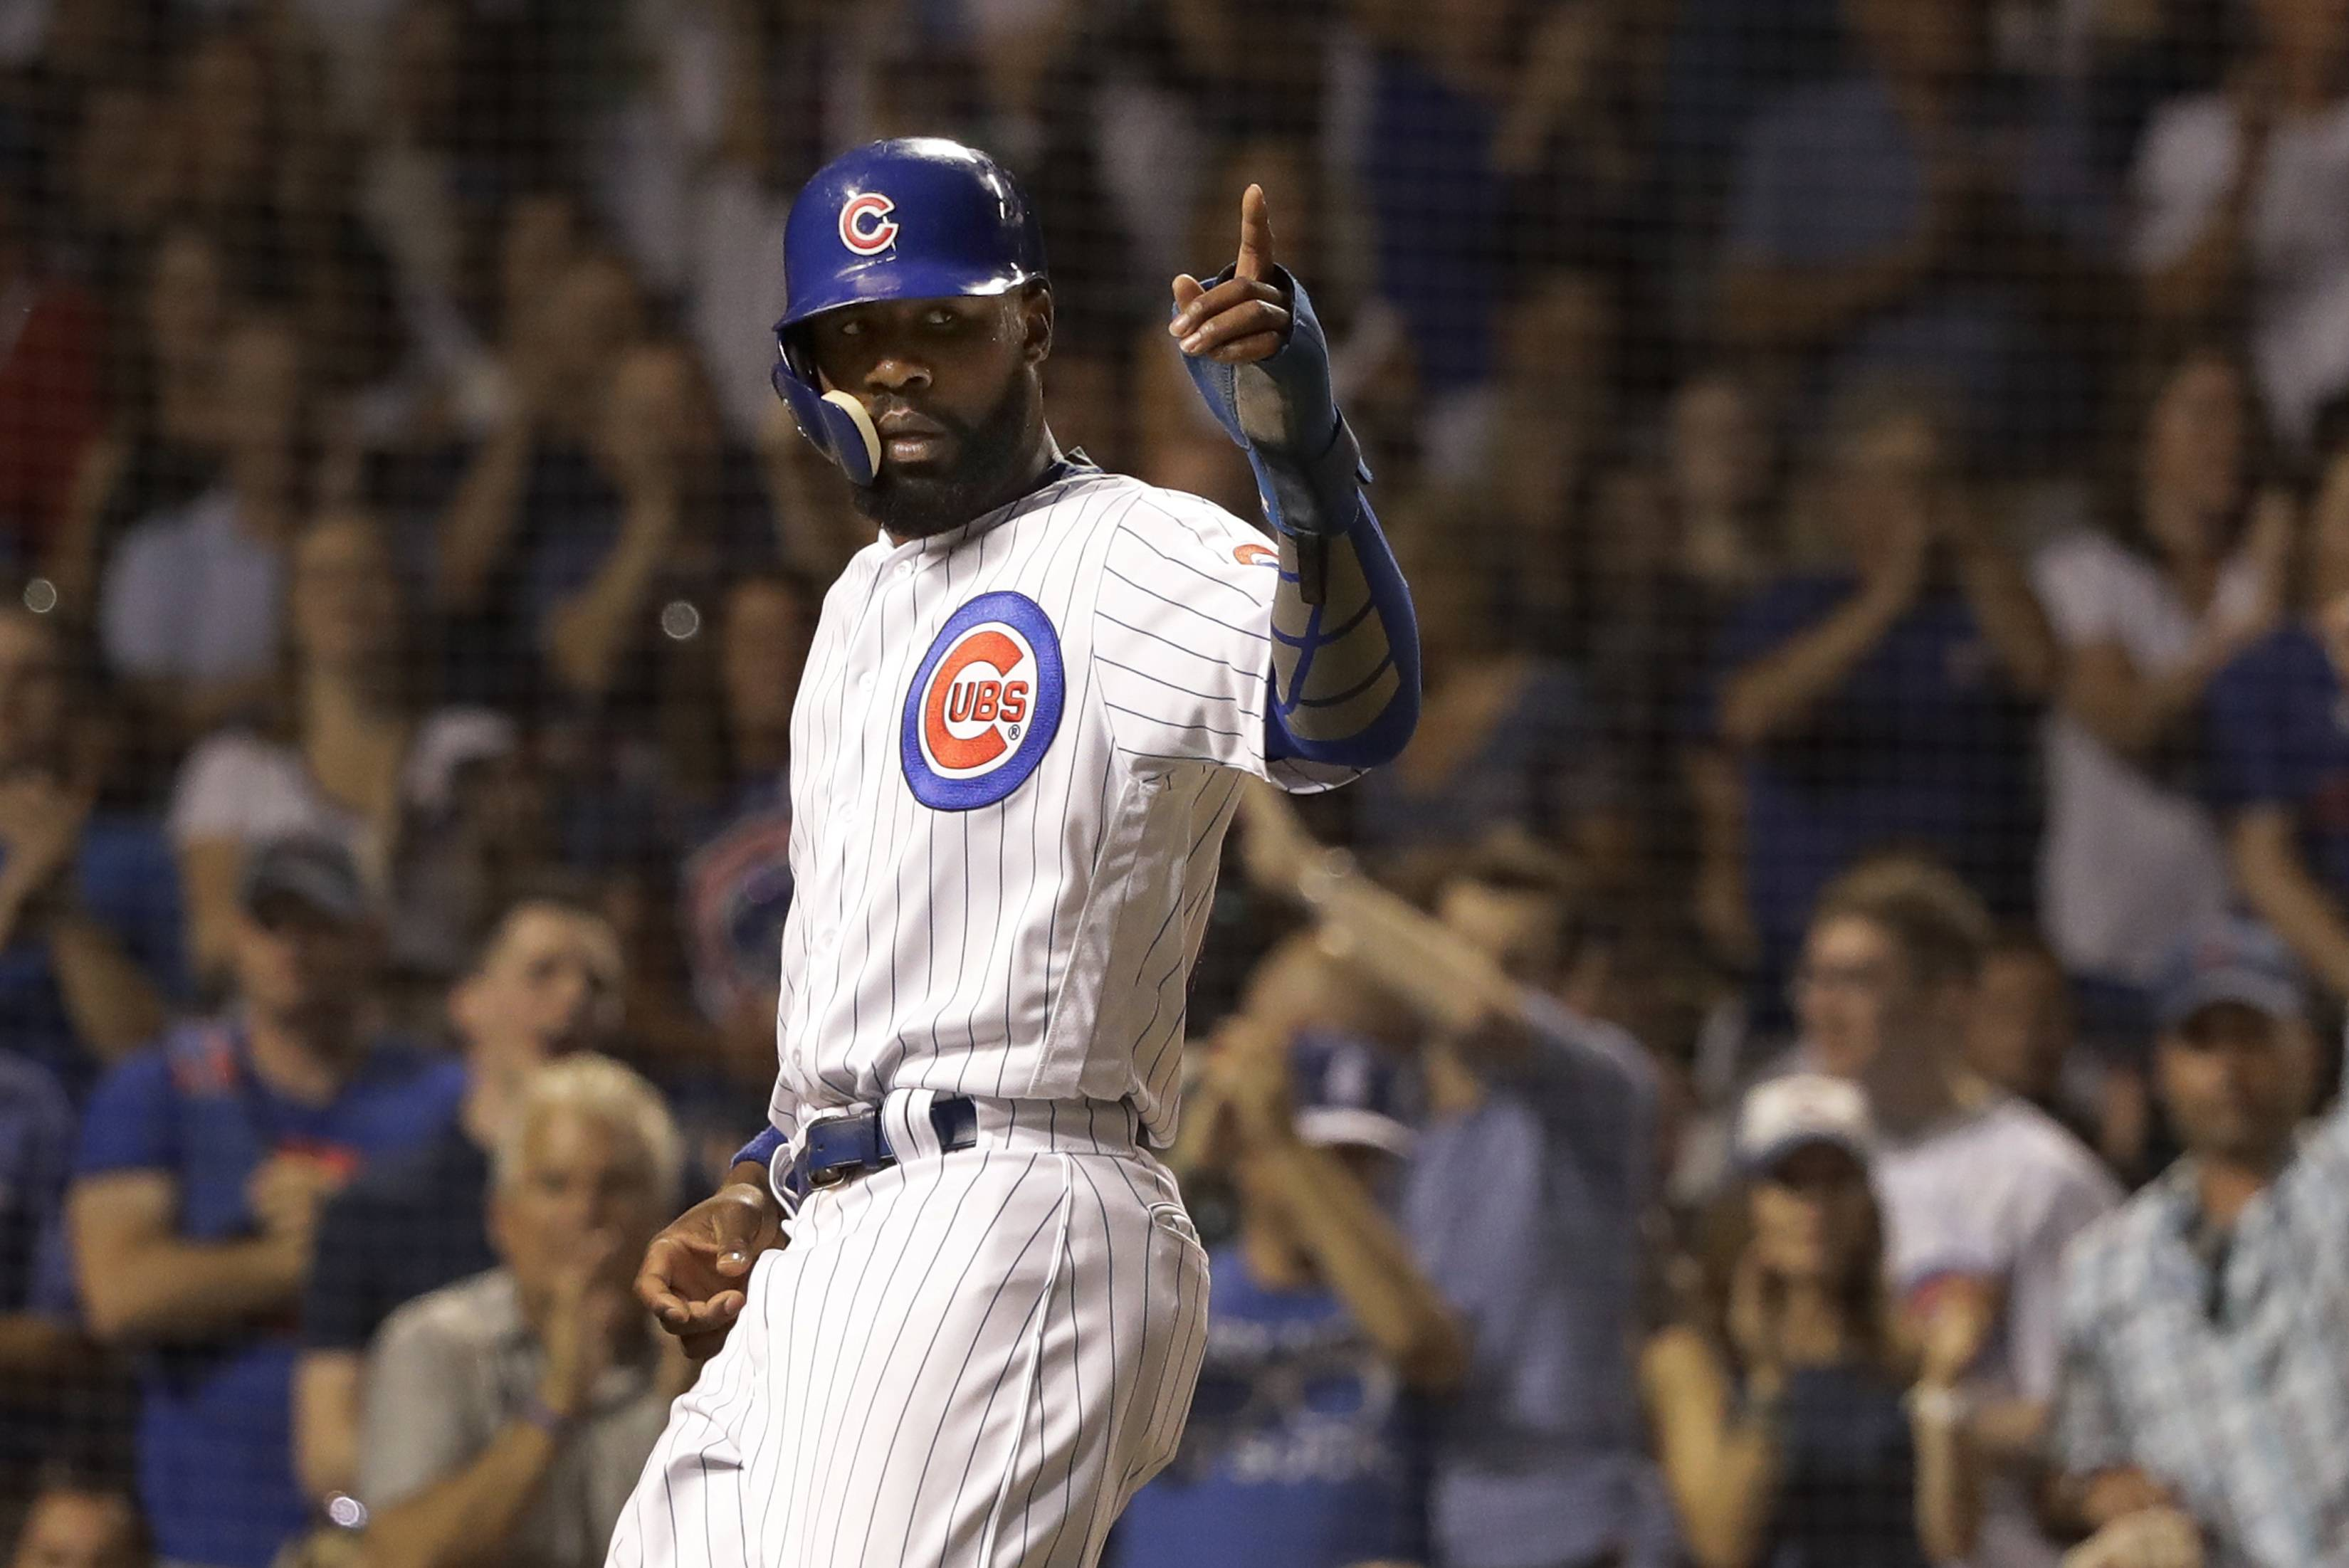 Chicago Cubs' Jason Heyward points to Ben Zobrist on first after he scored on Zobrist's single during the seventh inning of a baseball game against the St. Louis Cardinals, Thursday, July 19, 2018, in Chicago. The Cubs won 9-6. (AP Photo/Charles Rex Arbogast)